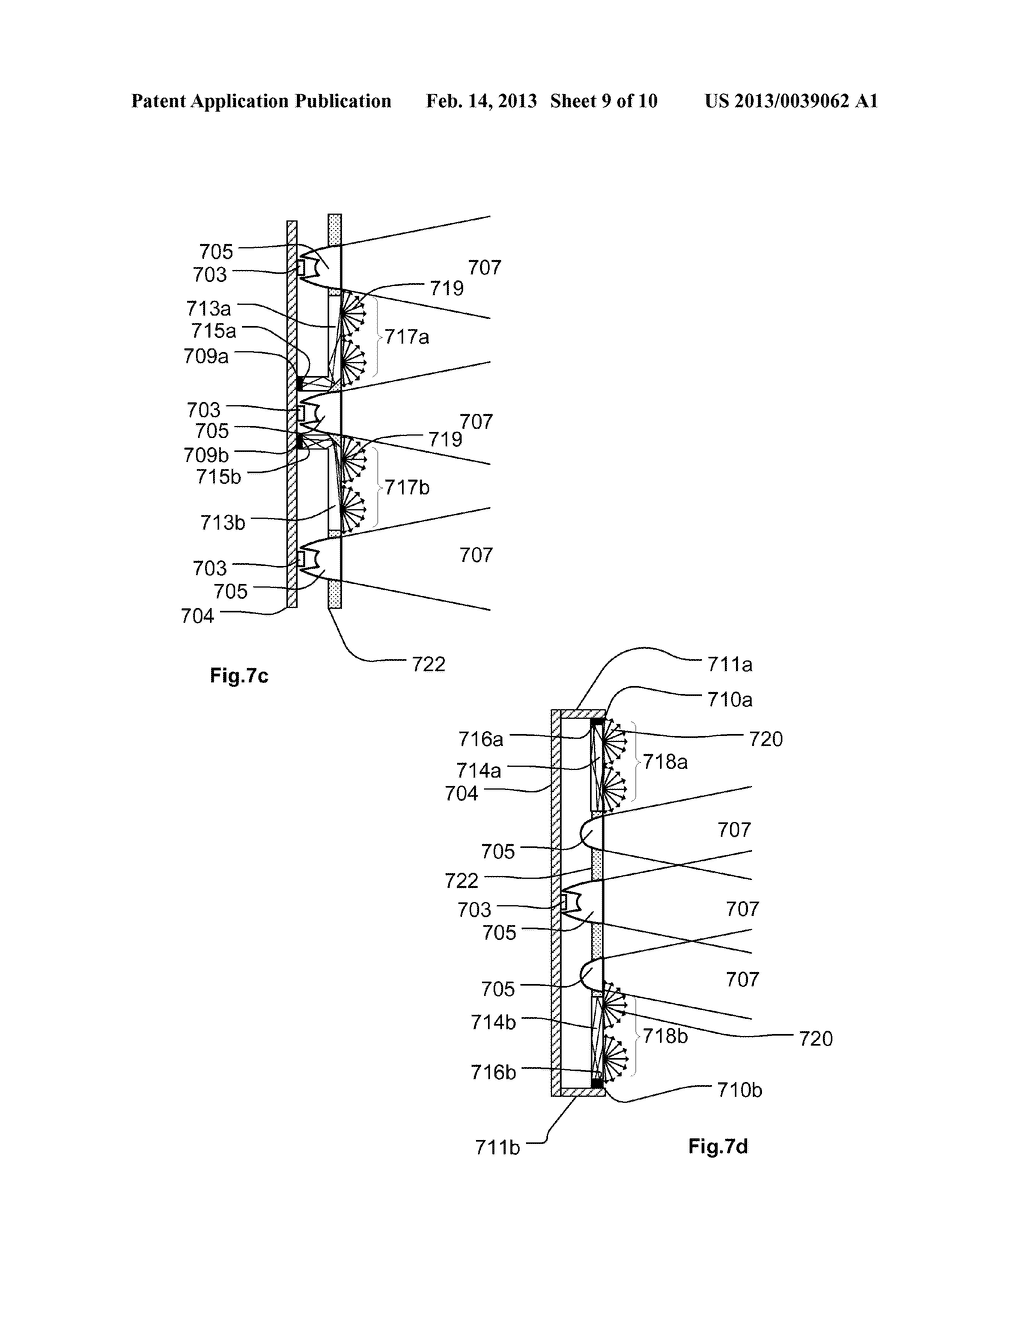 Light Fixture With Background Display Using Diffuse Pixels Between     Nondiffuse Light Sources - diagram, schematic, and image 10